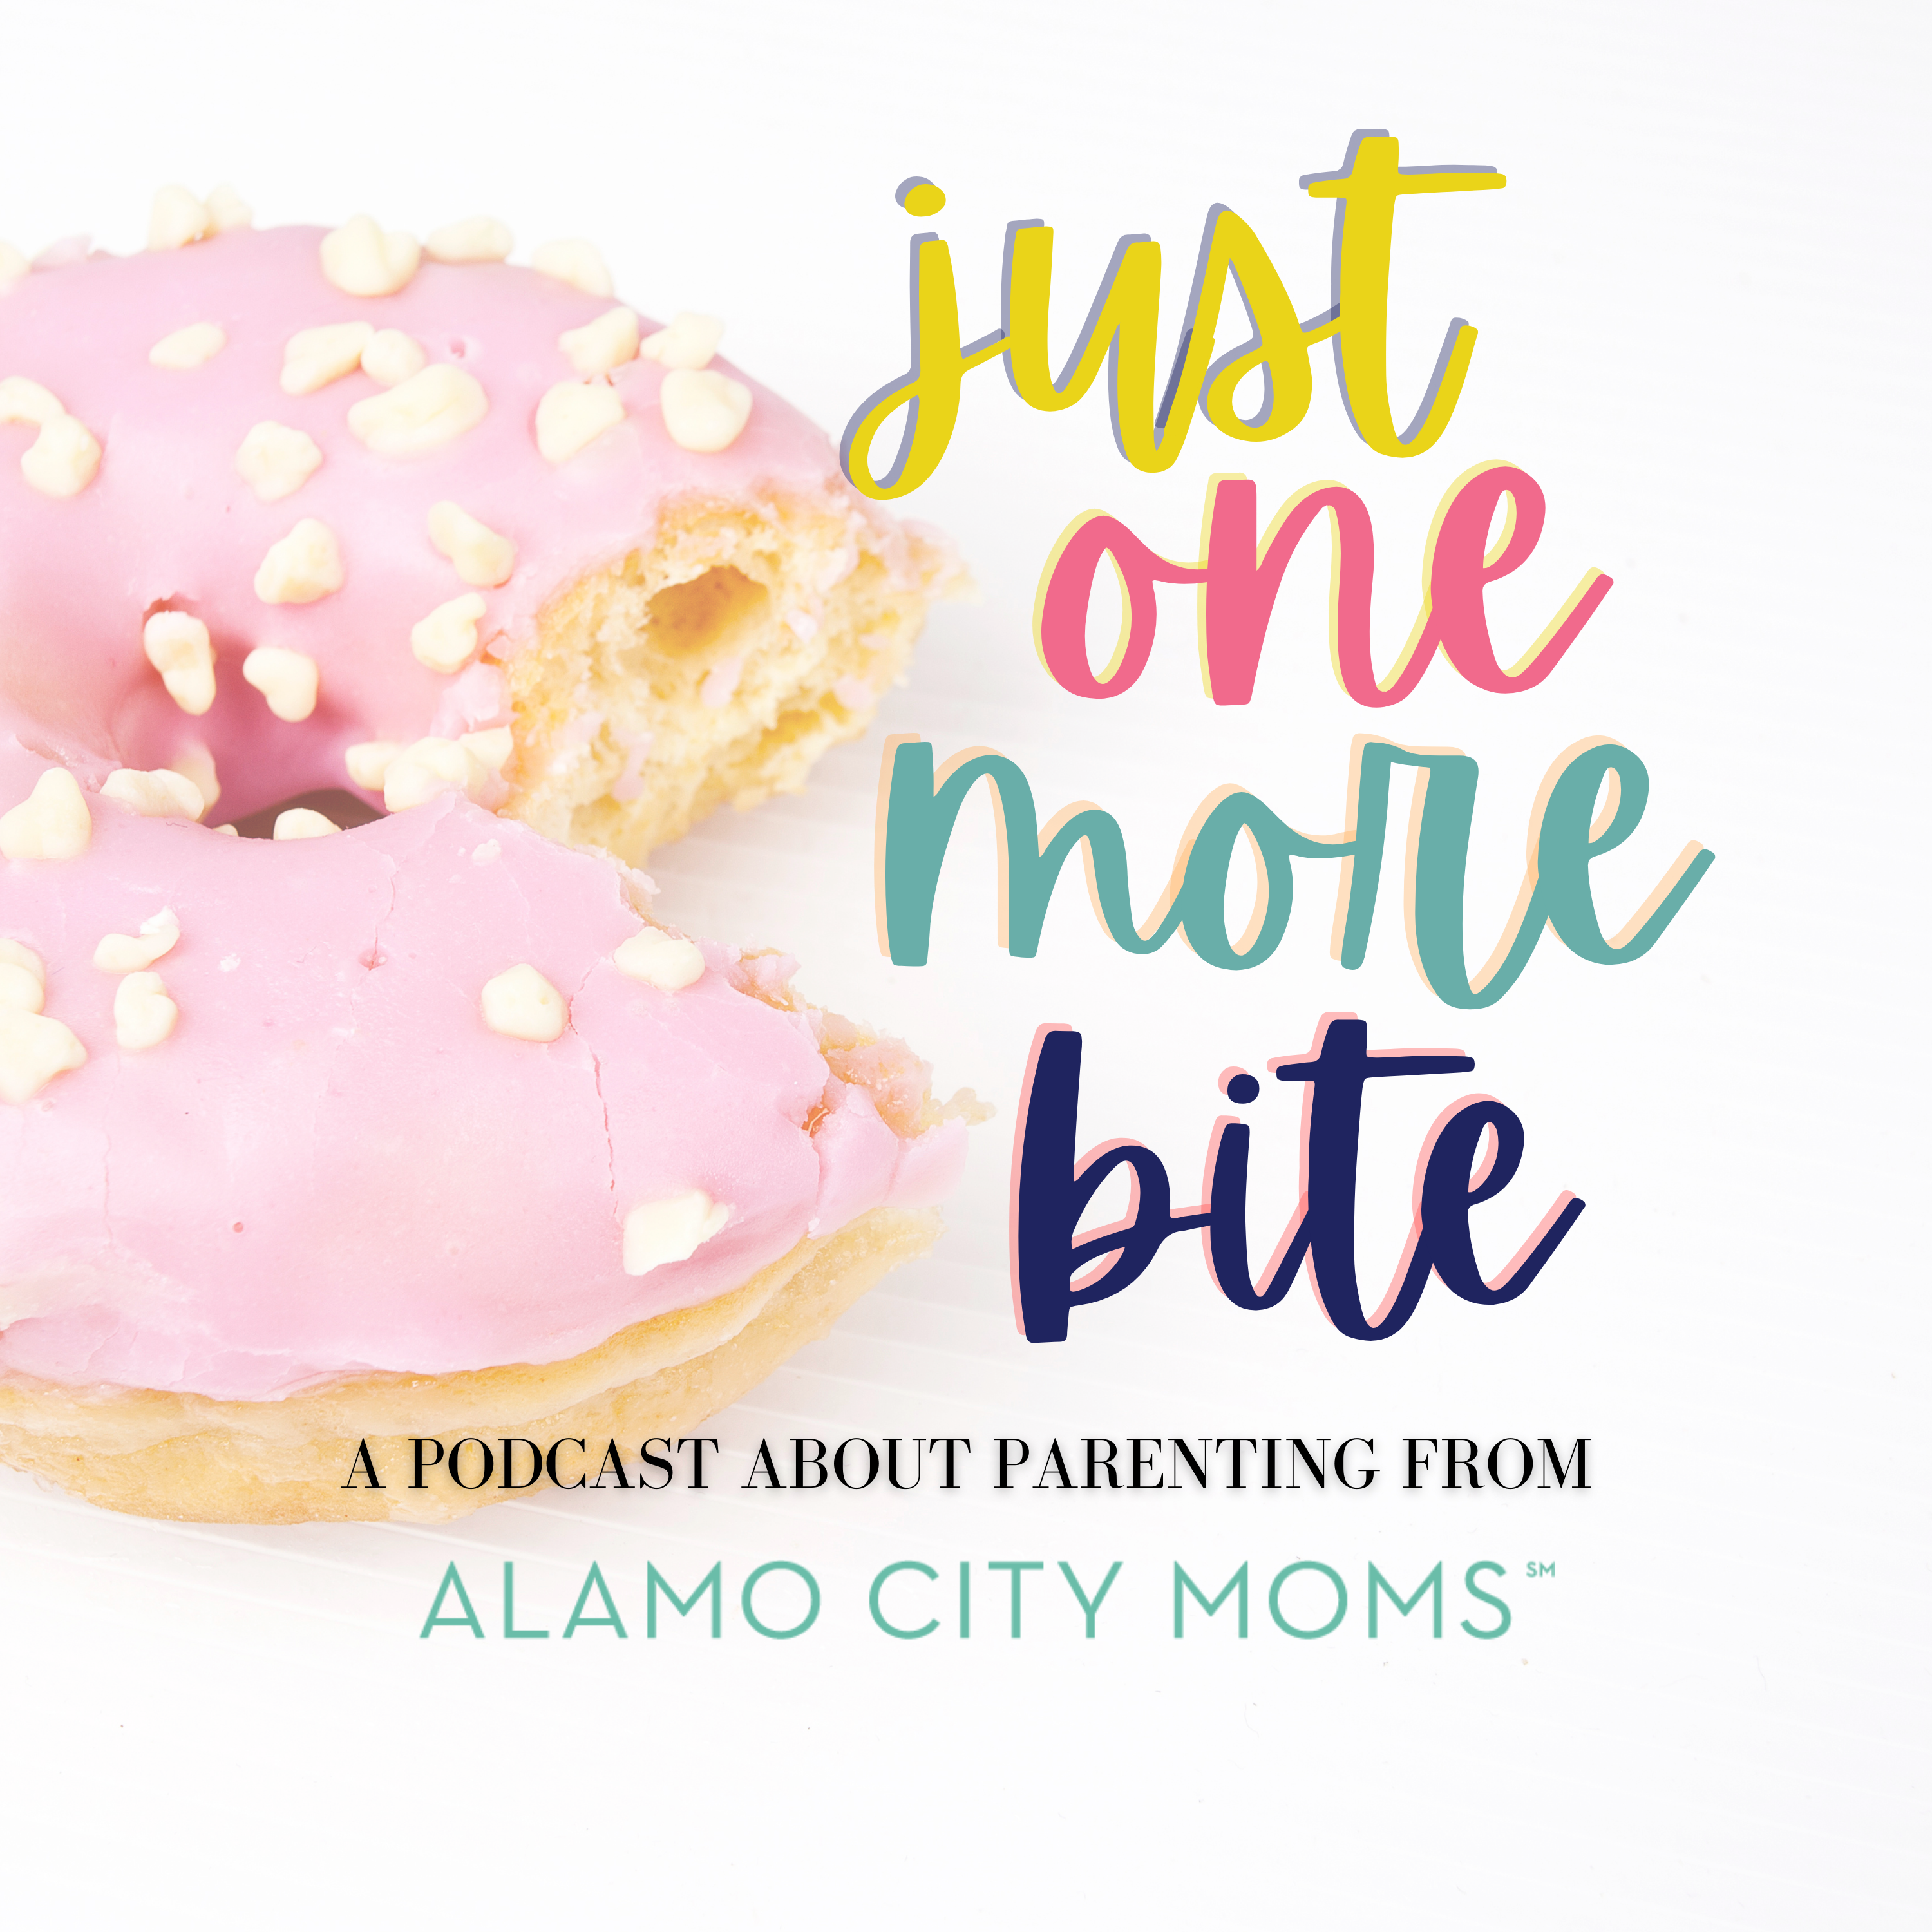 Just One More Bite - A Parenting Podcast from Alamo City Moms